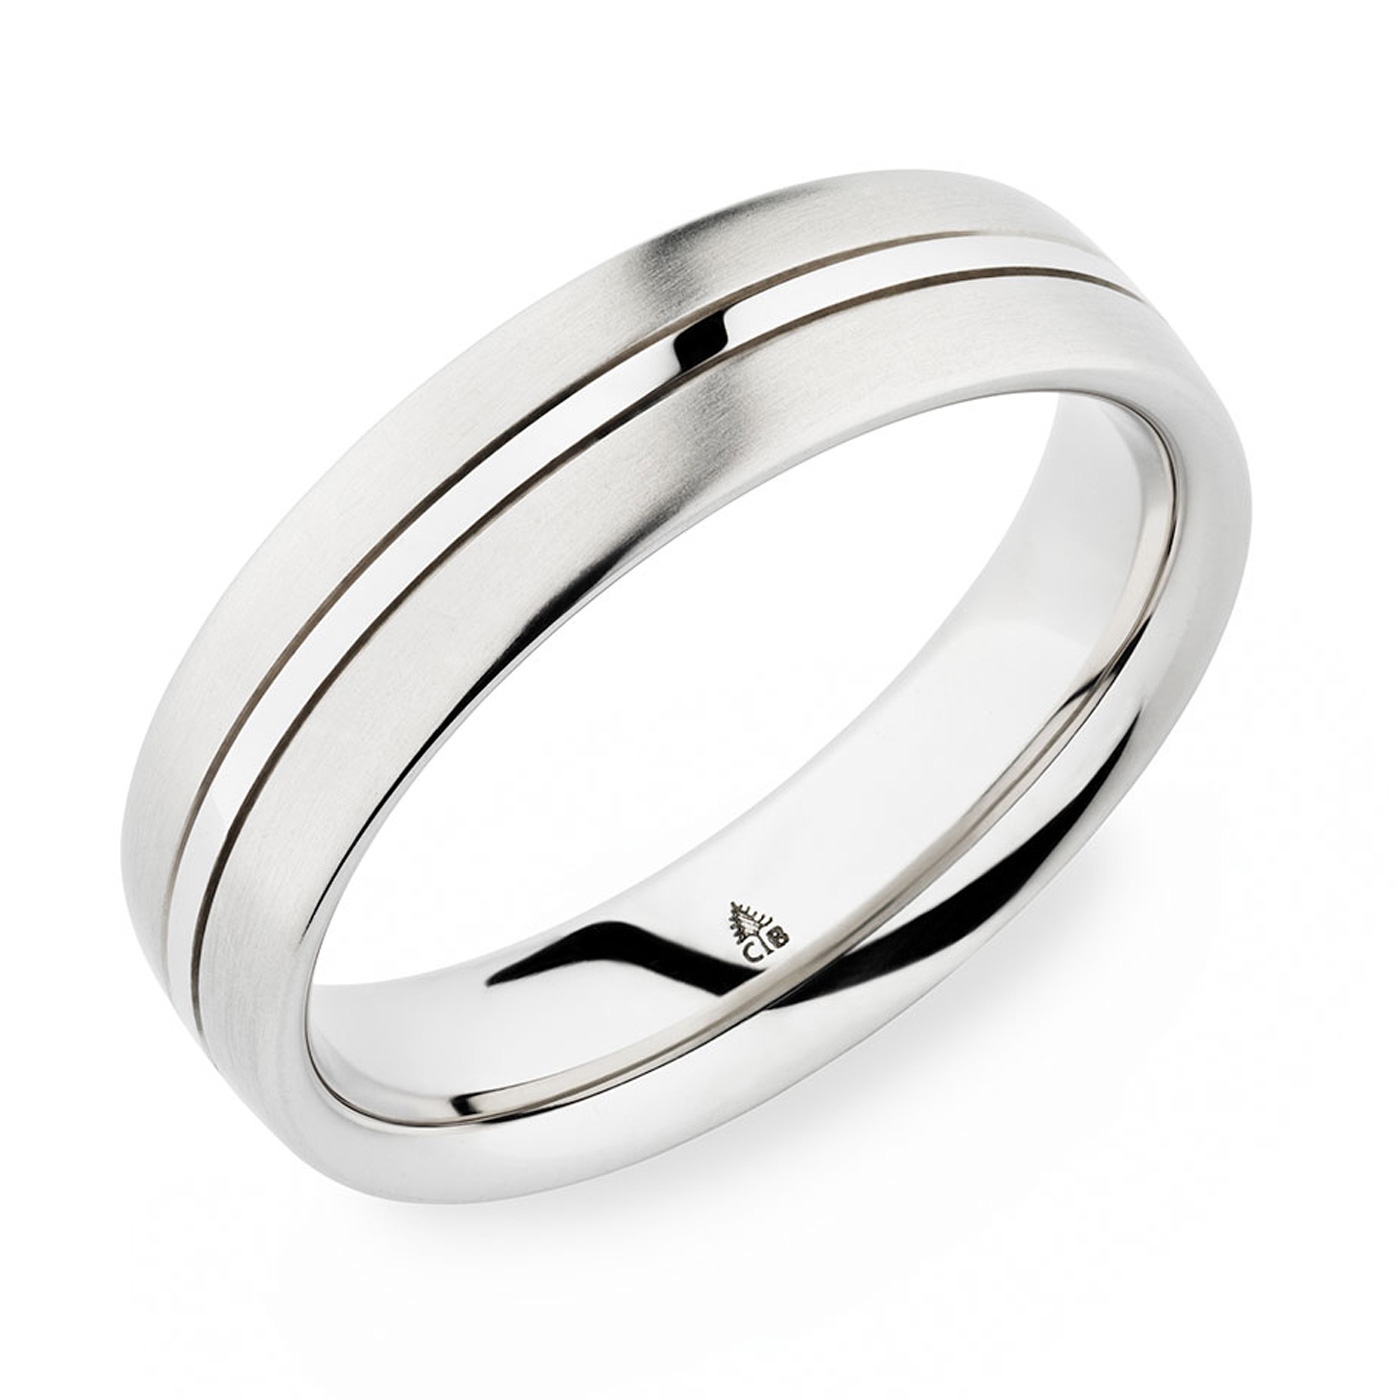 274173 christian bauer platinum wedding ring band tq for Christian bauer wedding rings